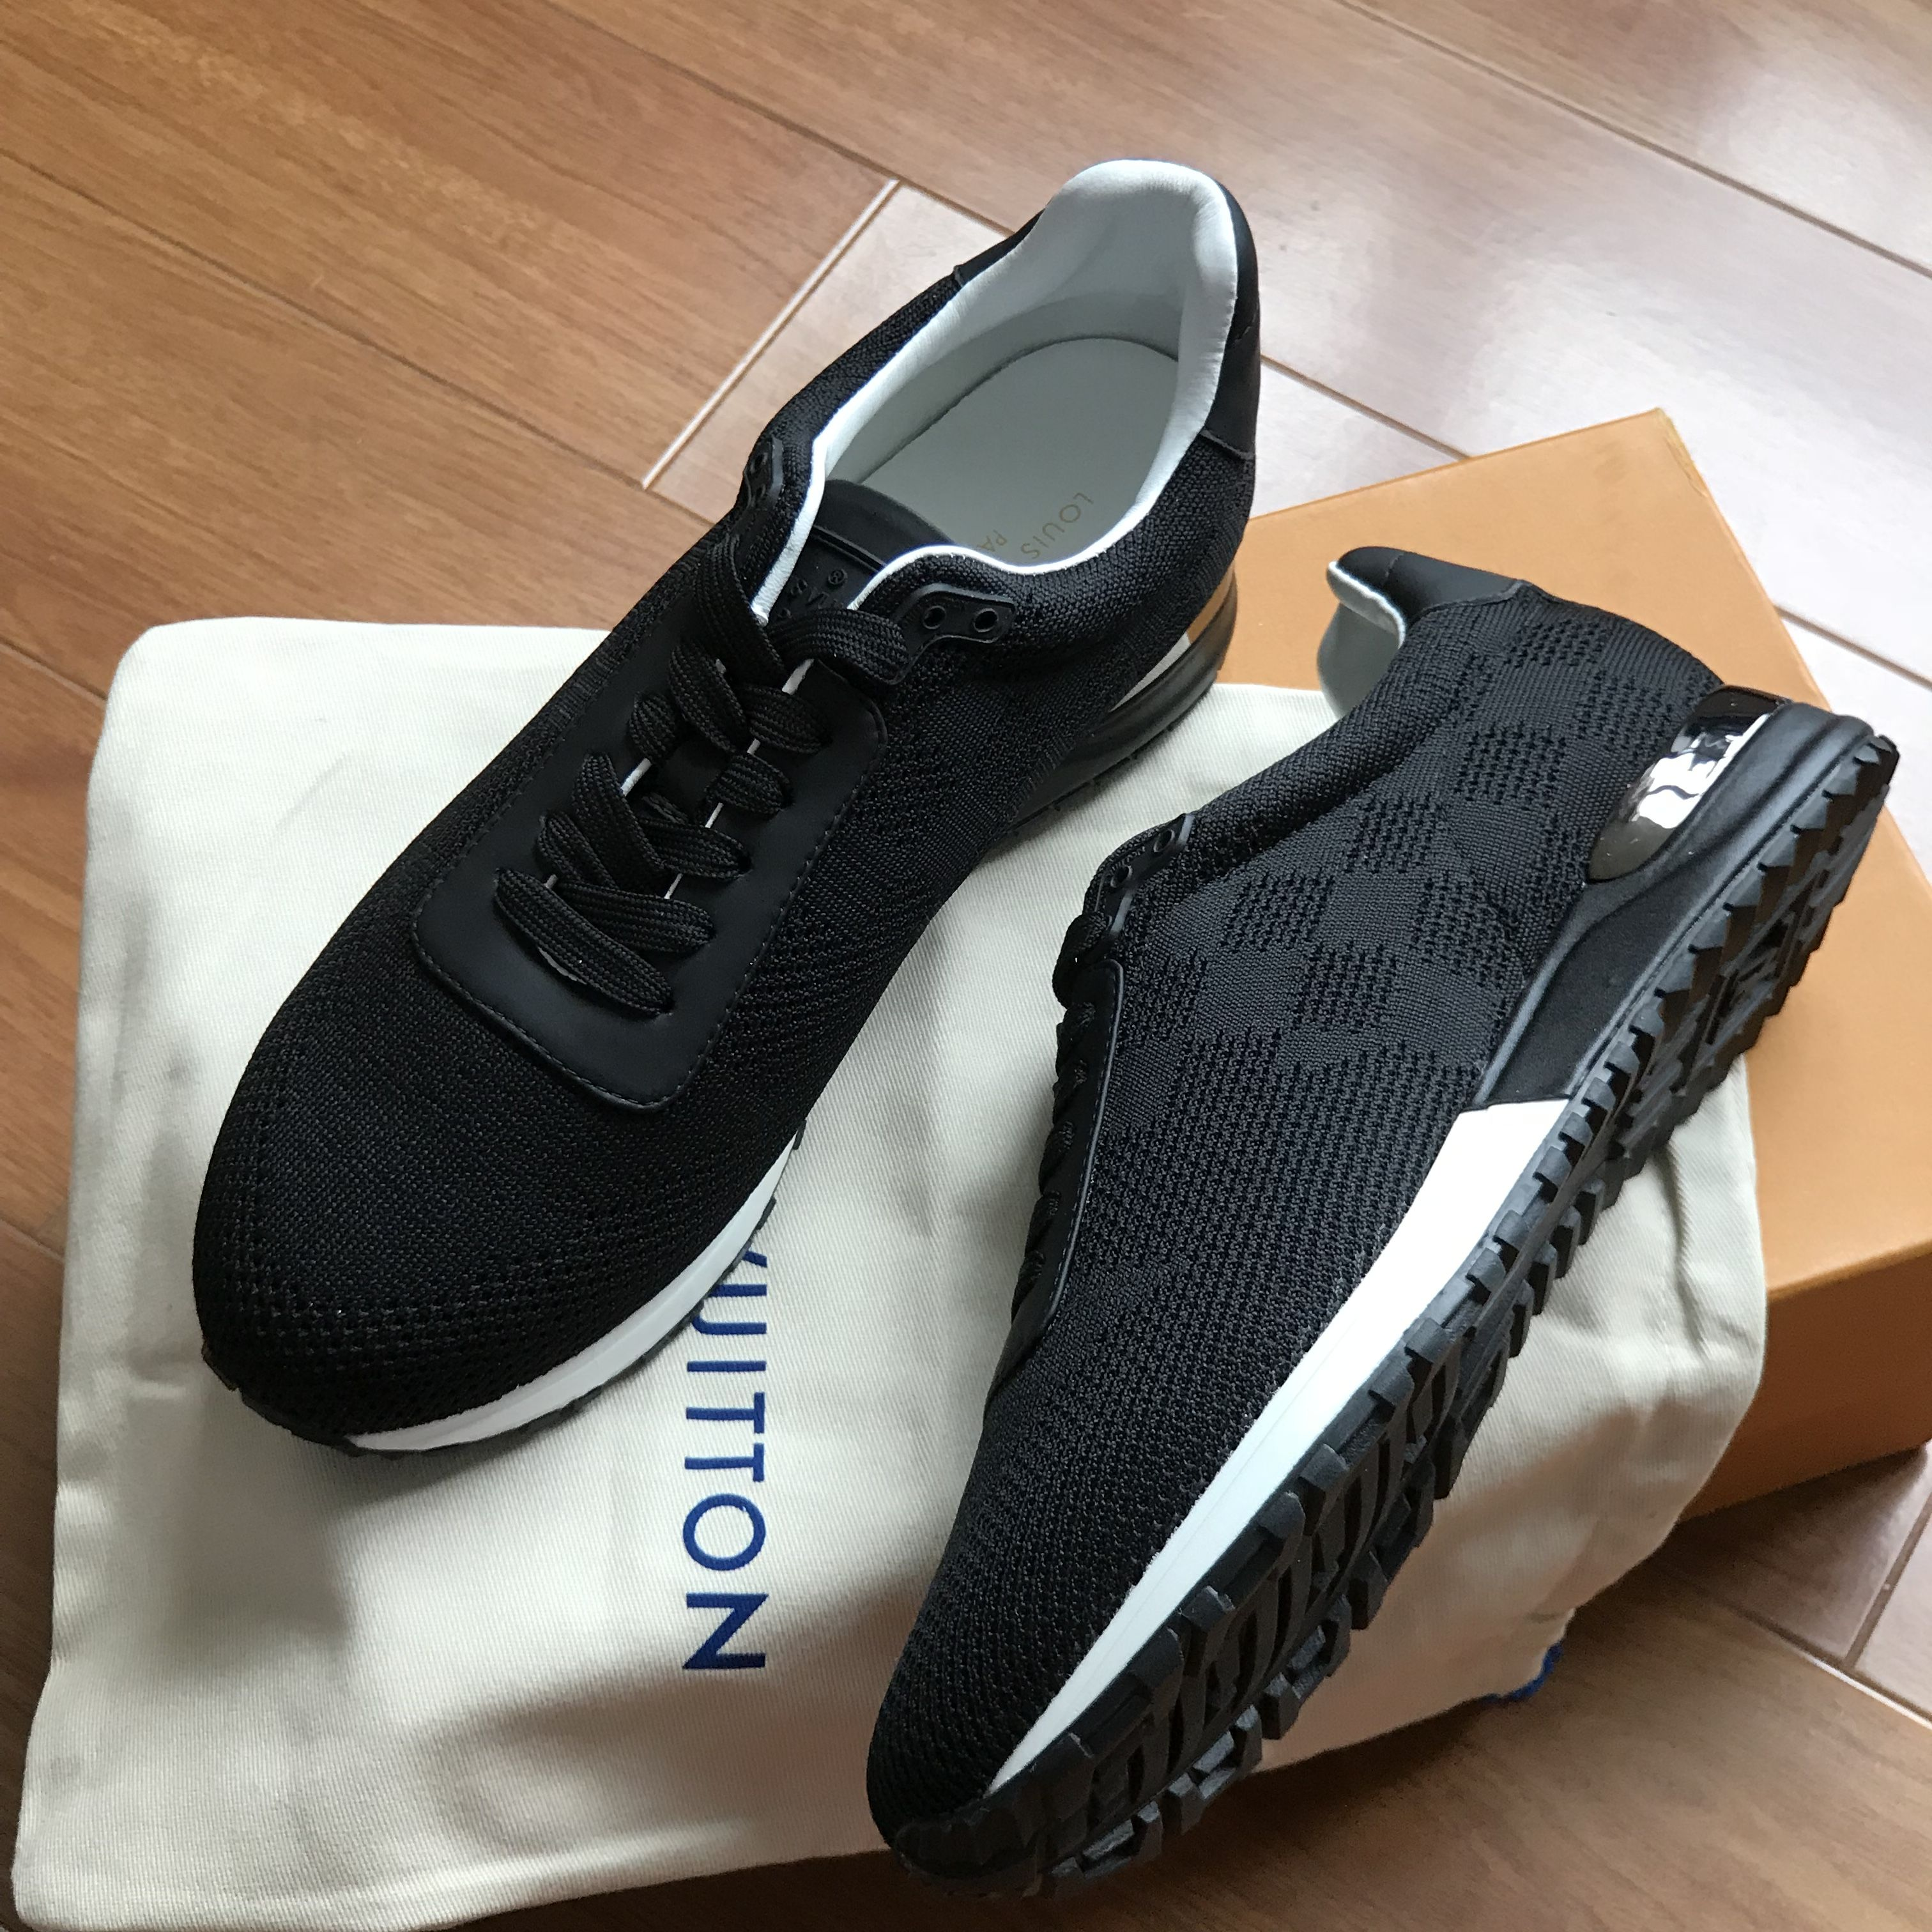 369f7bbb44f5 Louis Vuitton lv man sneakers trainers